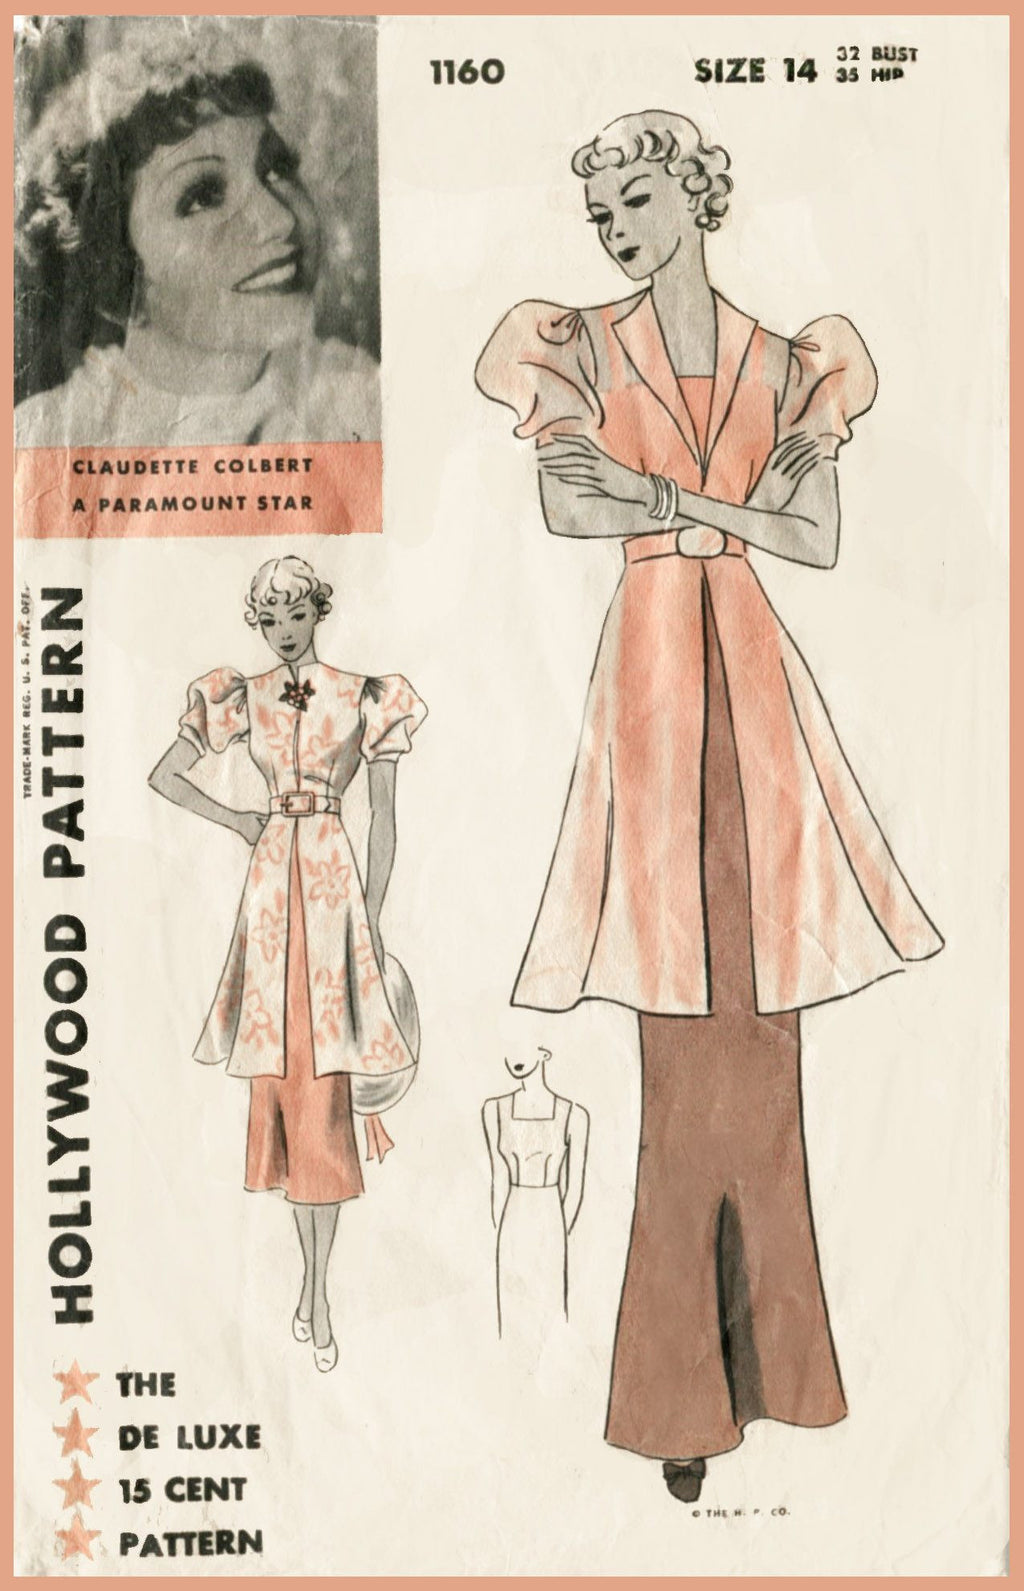 Hollywood 1160 Claudette Colbert 1930s tunic dress sewing pattern